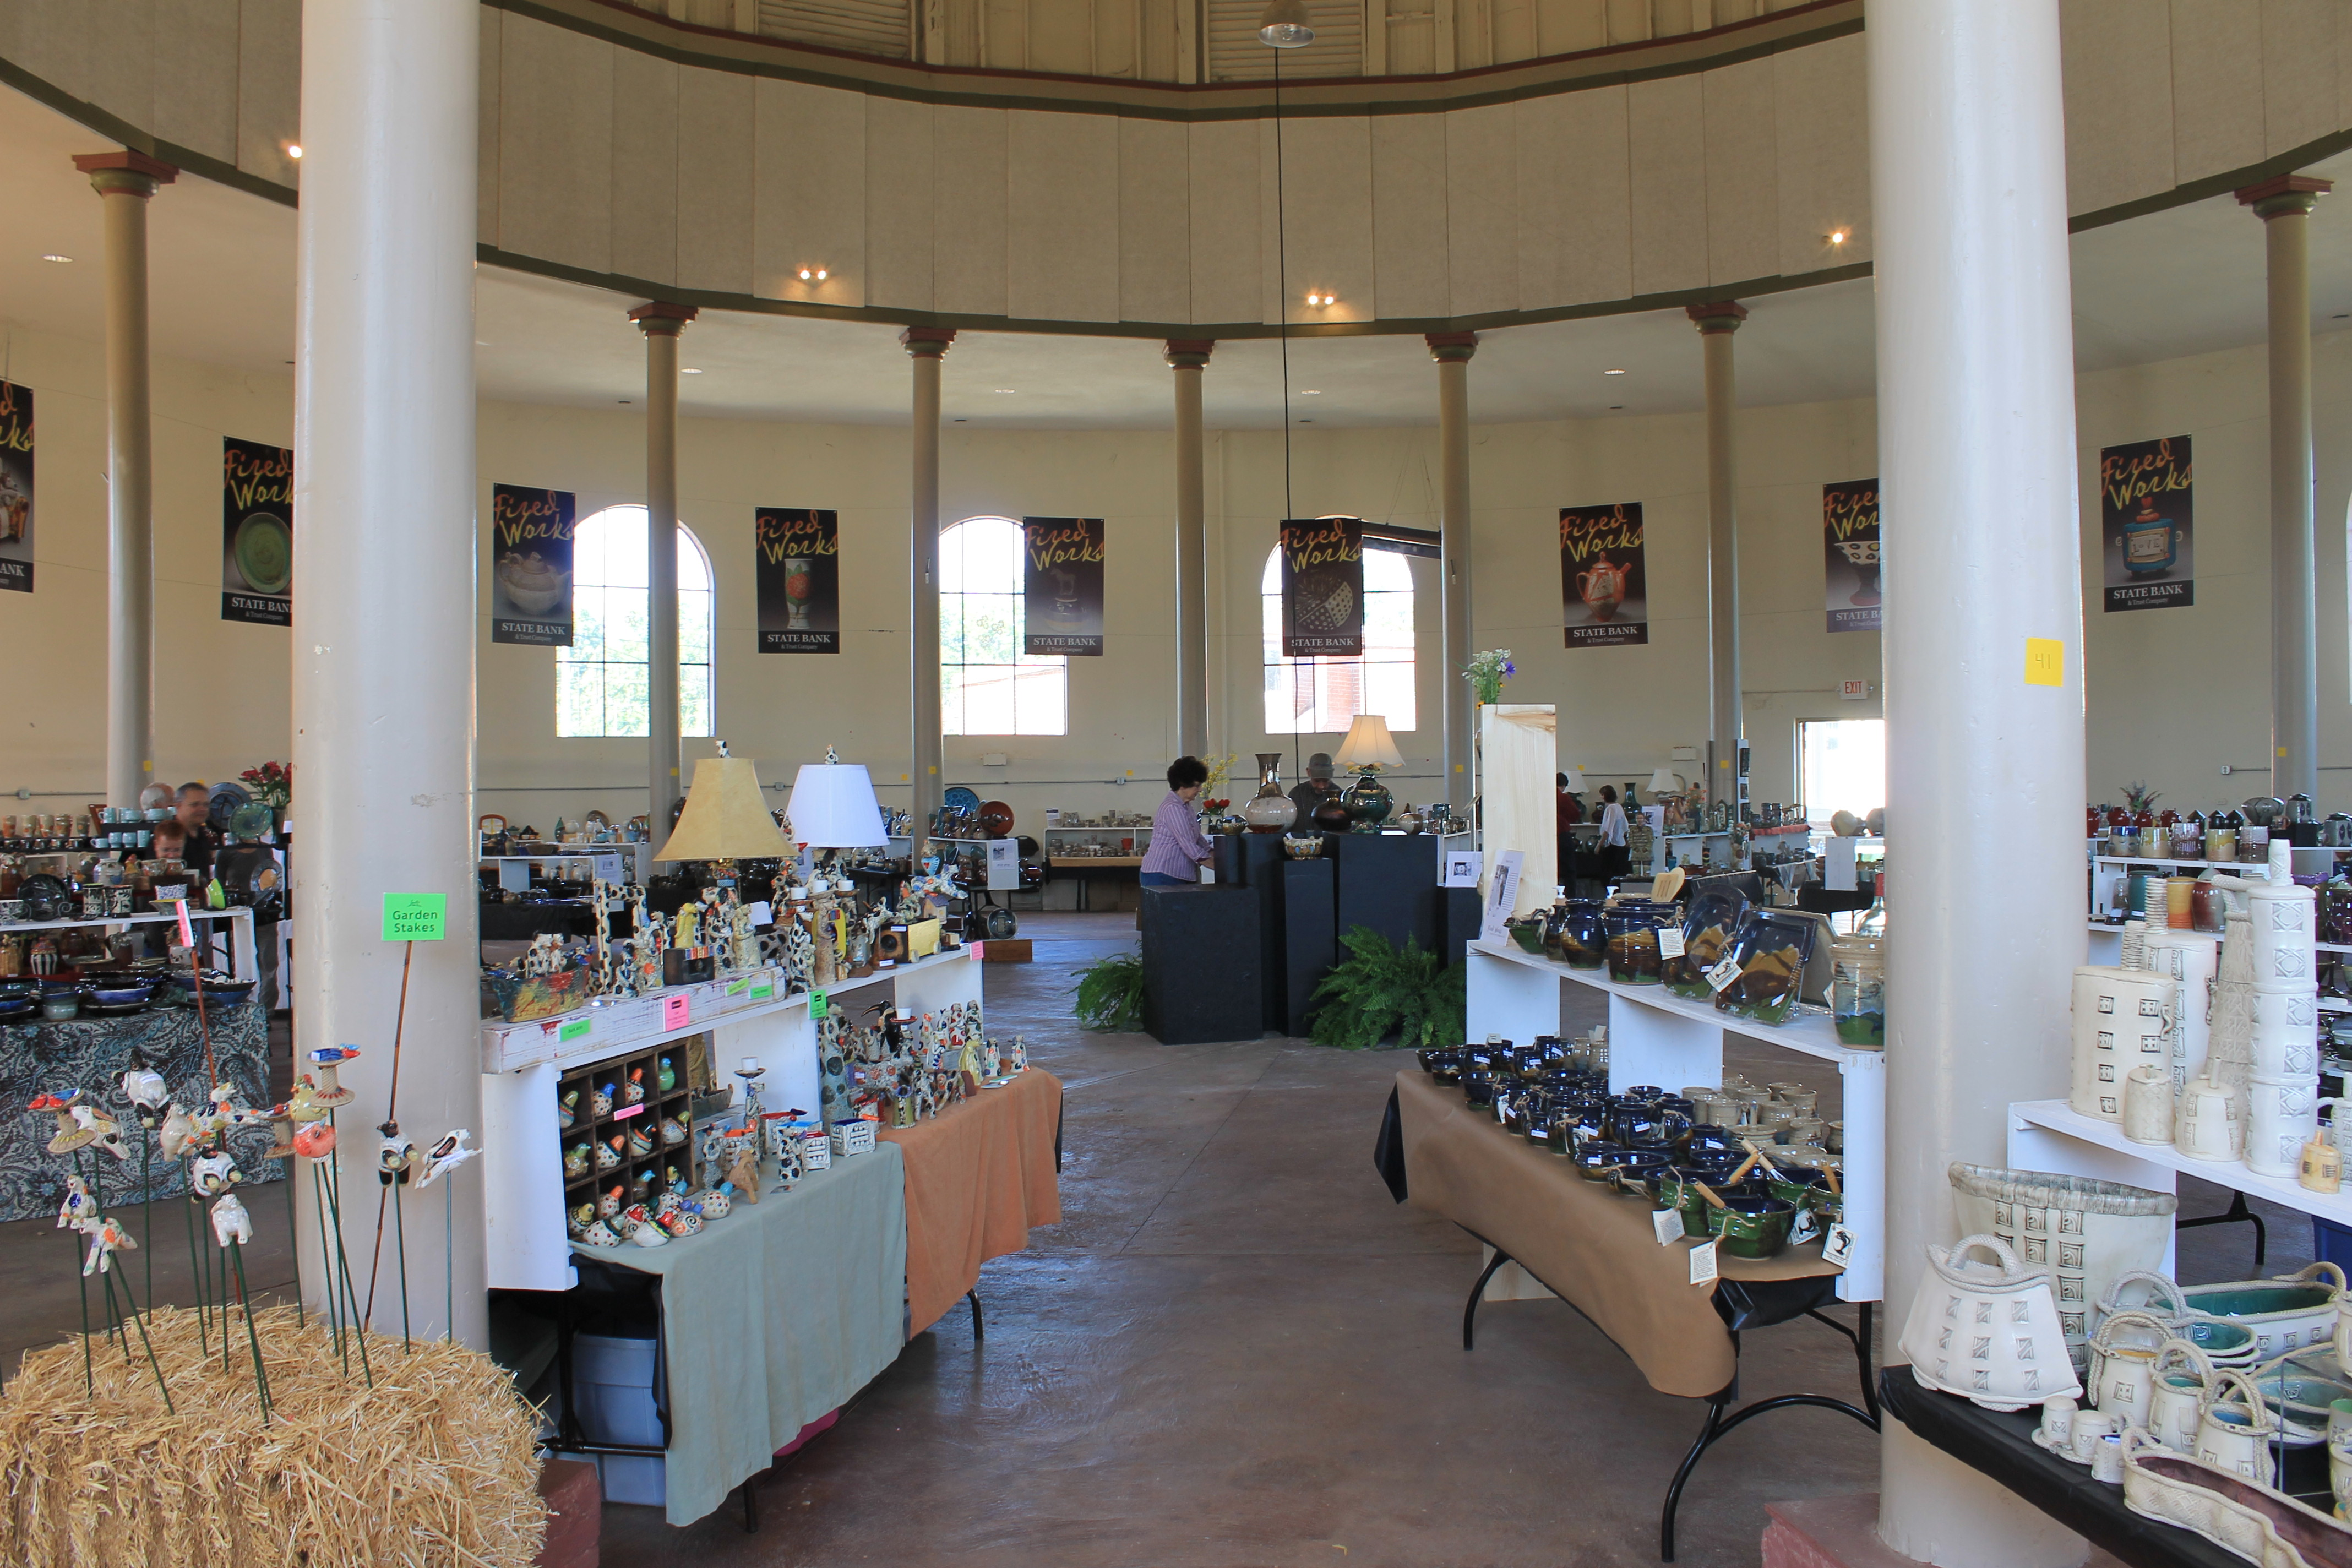 Fired Works is held in the Historic Round Building in Macon's beautiful Central City Park each April.